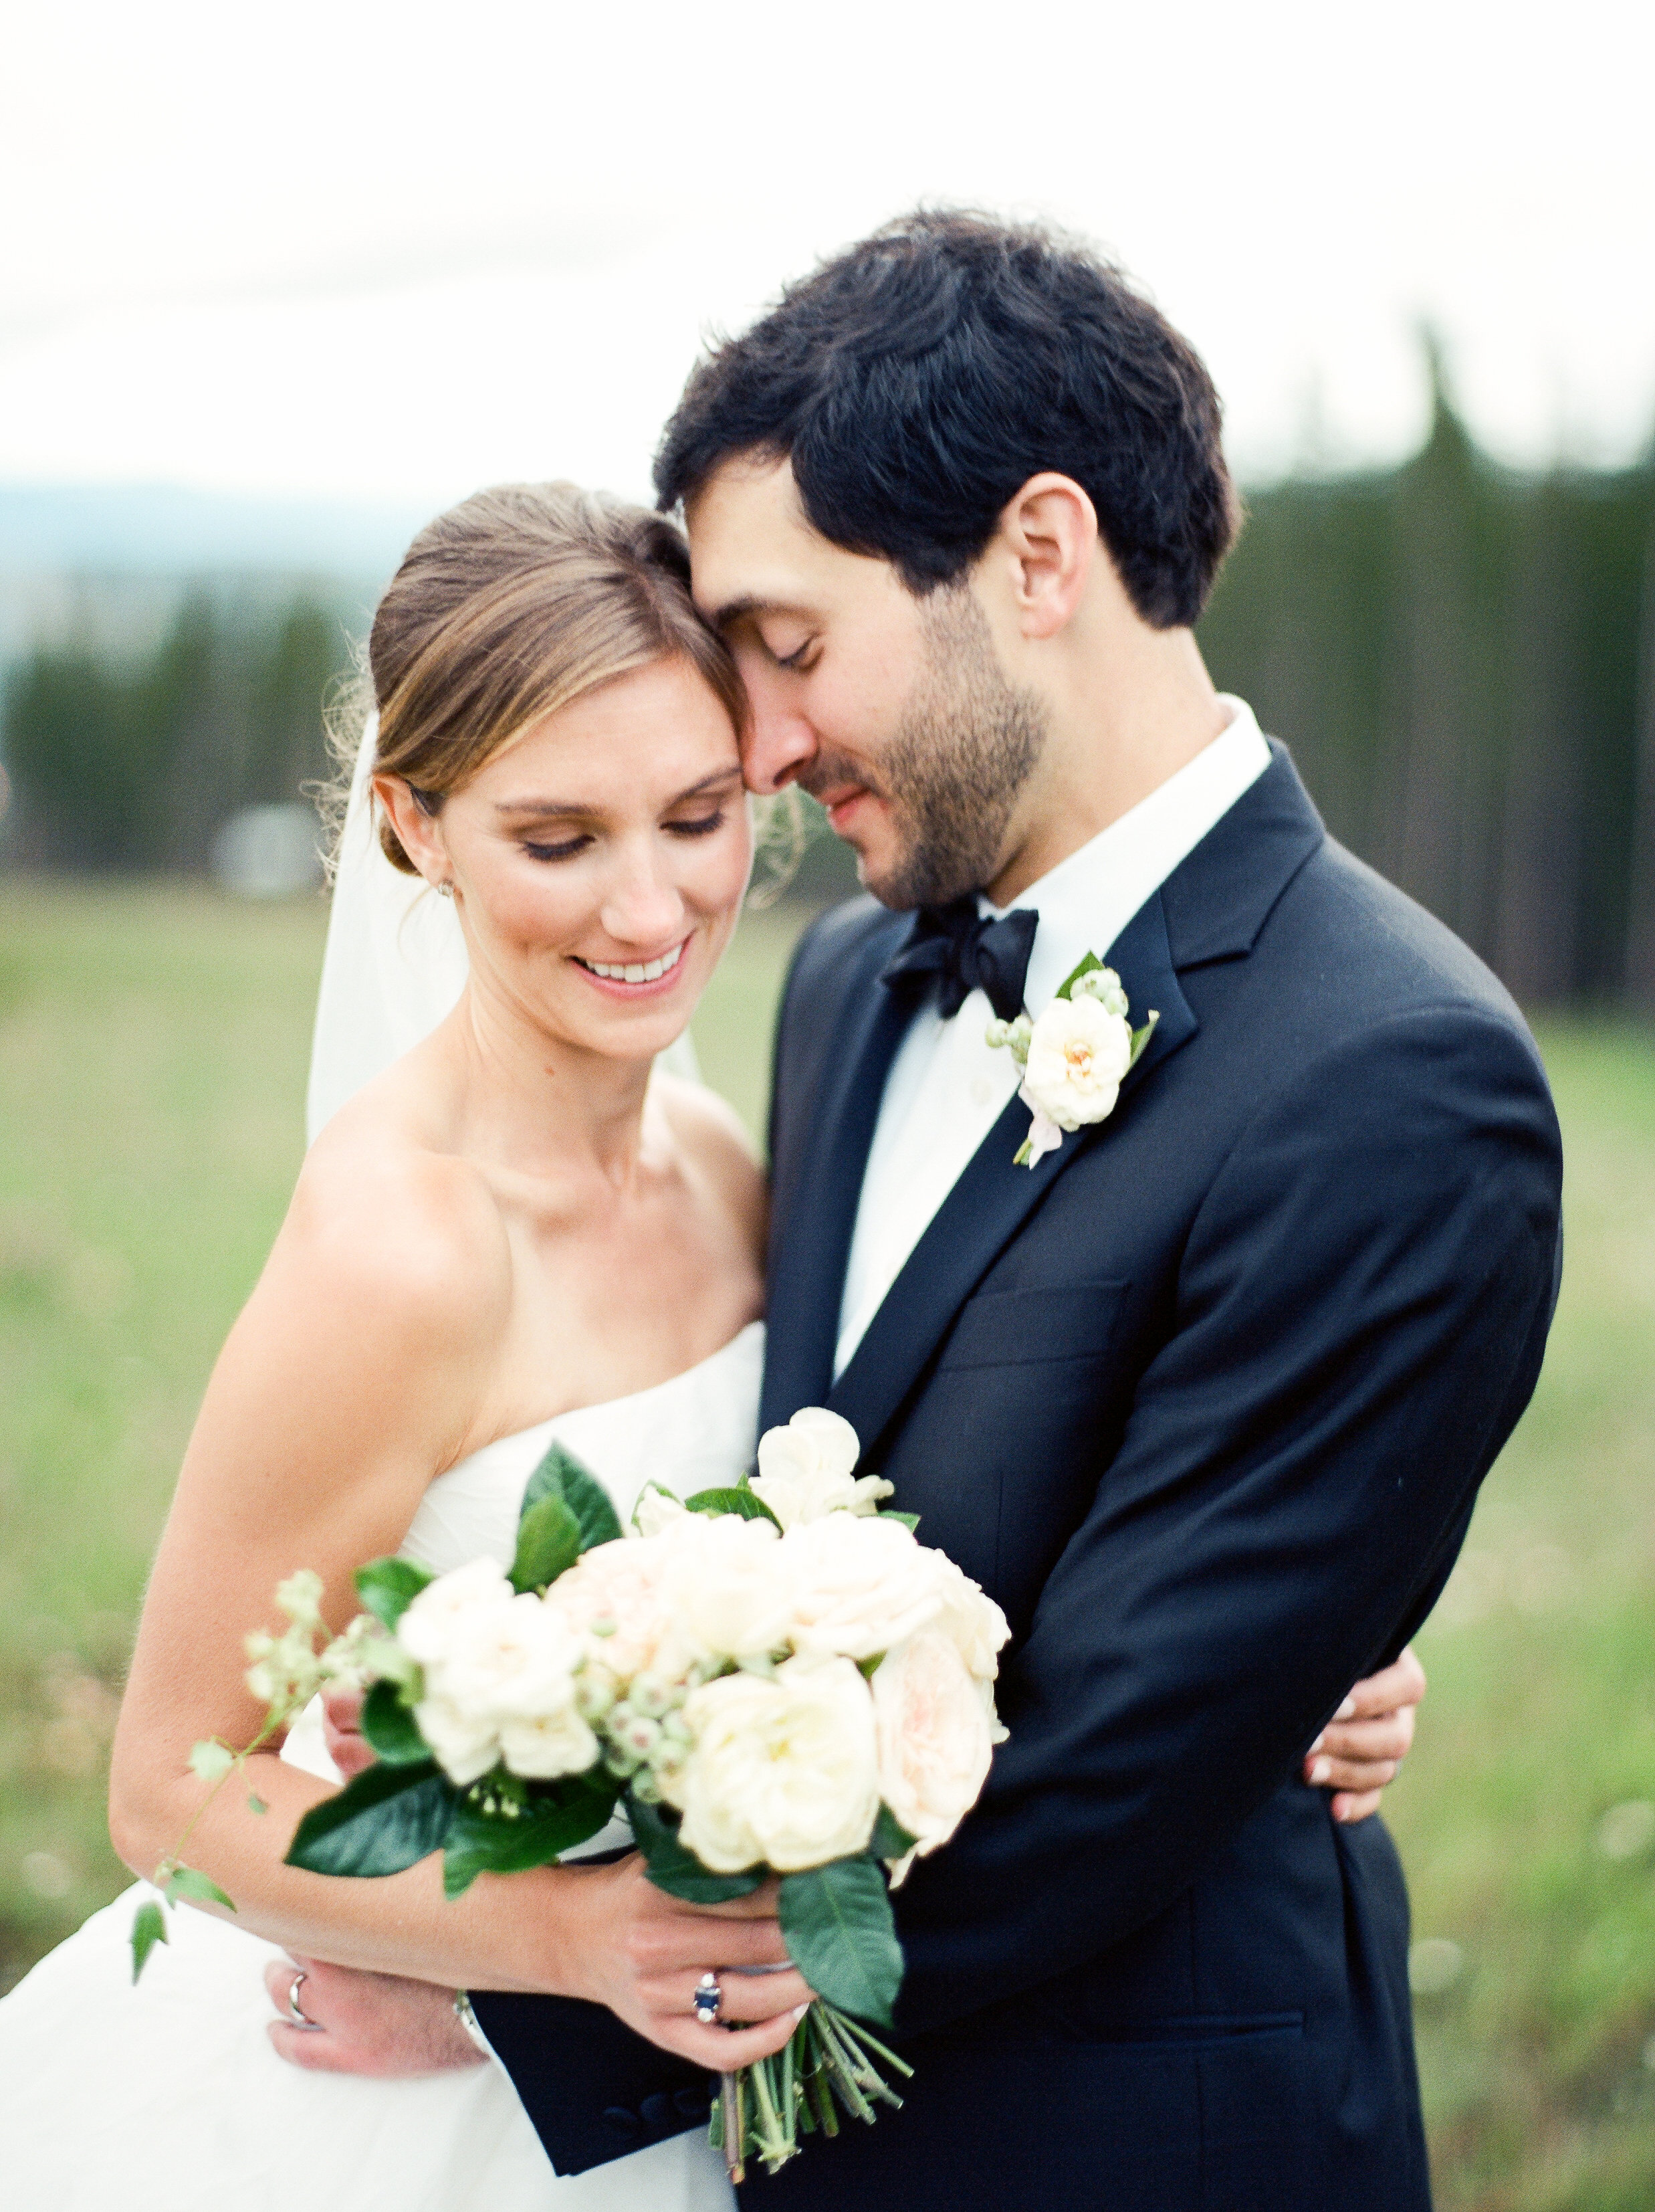 A Traditional, Romantic Wedding in Breckenridge - Bella Design & Planning